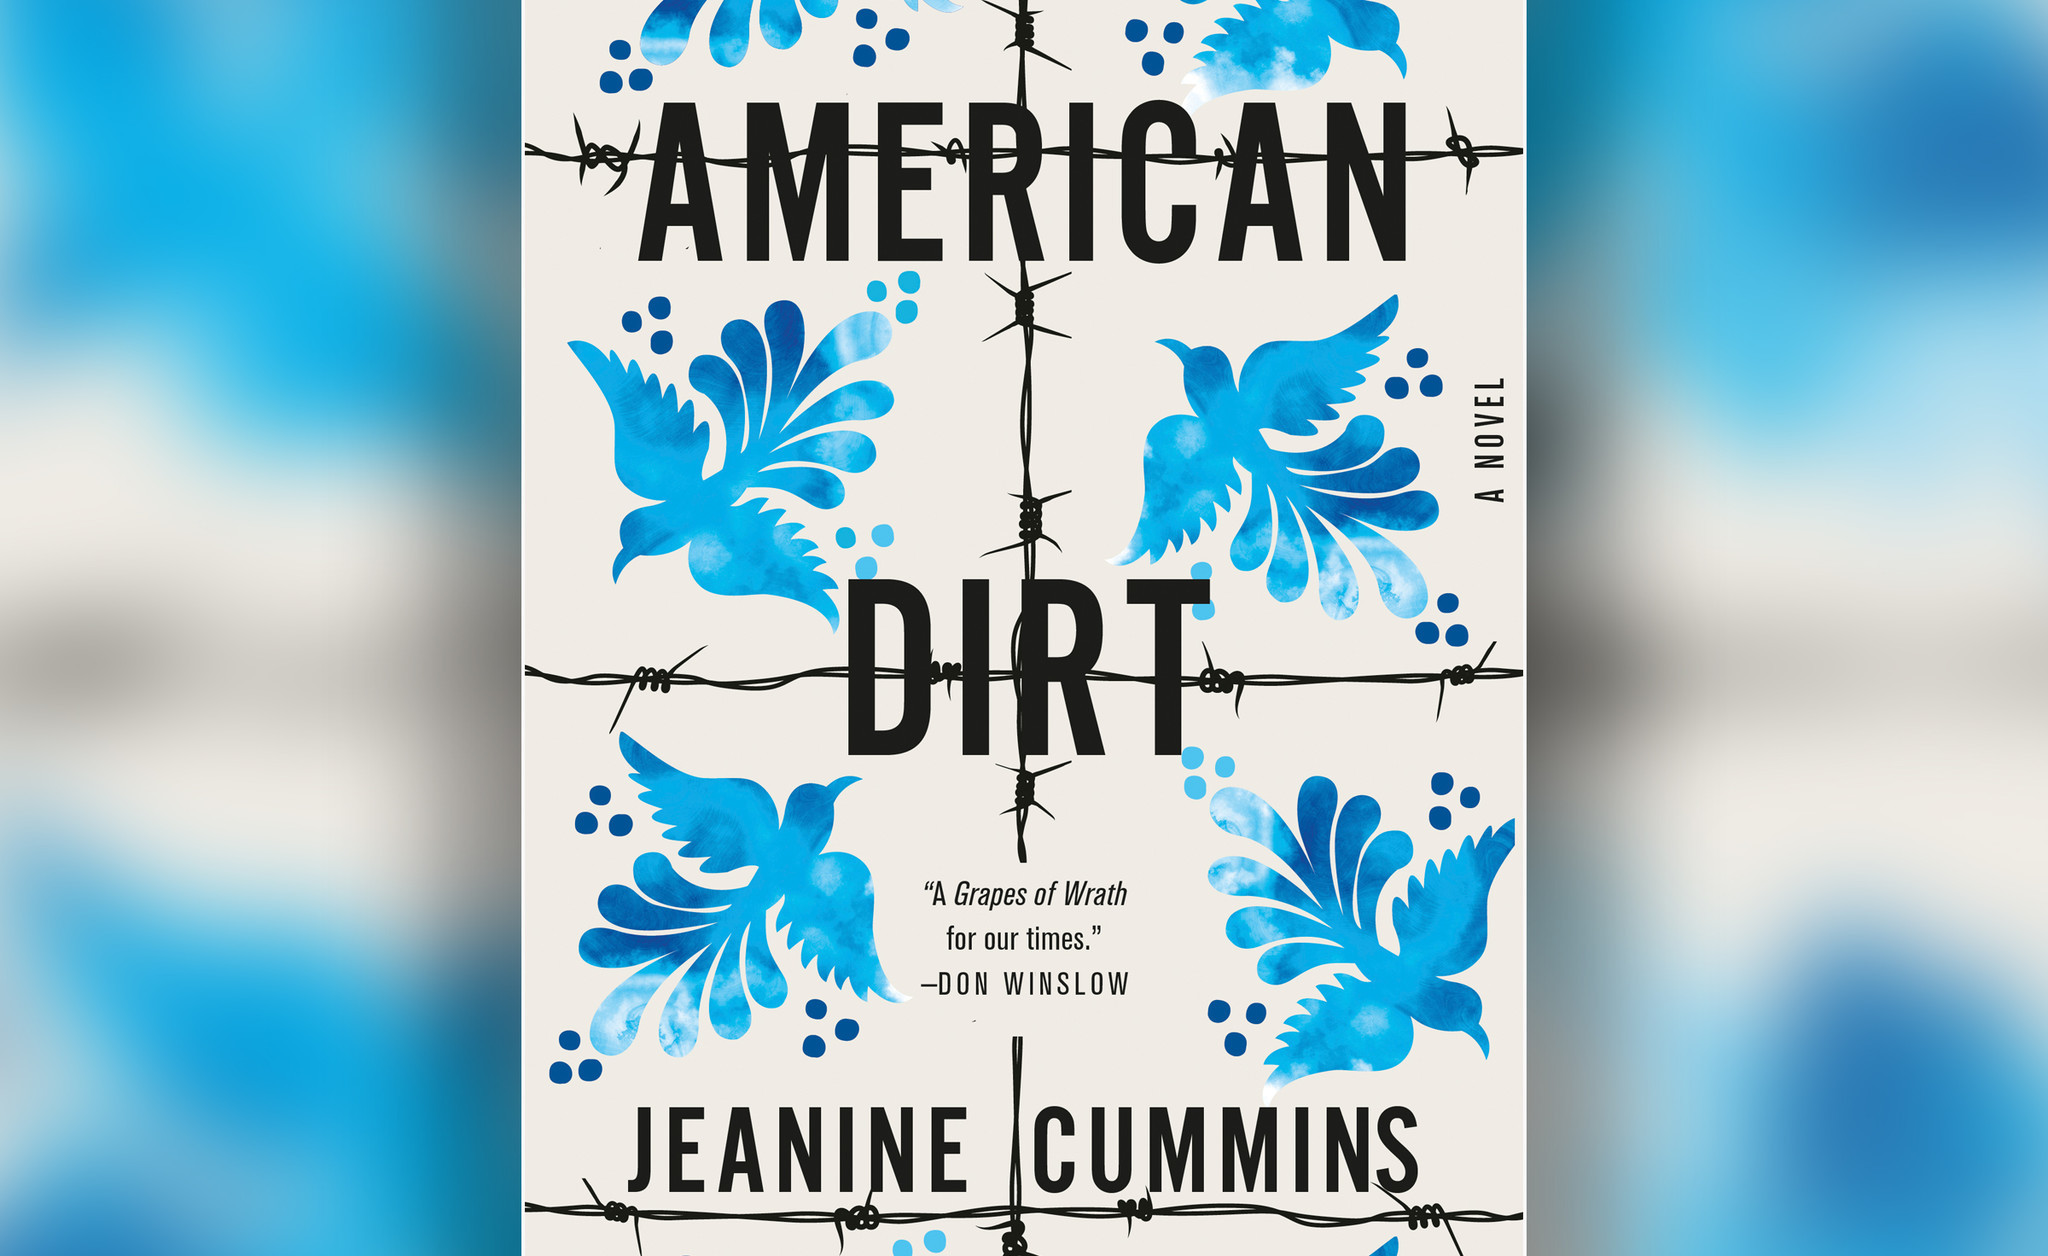 'American Dirt' publisher cancels entirety of Jeanine Cummins' book tour